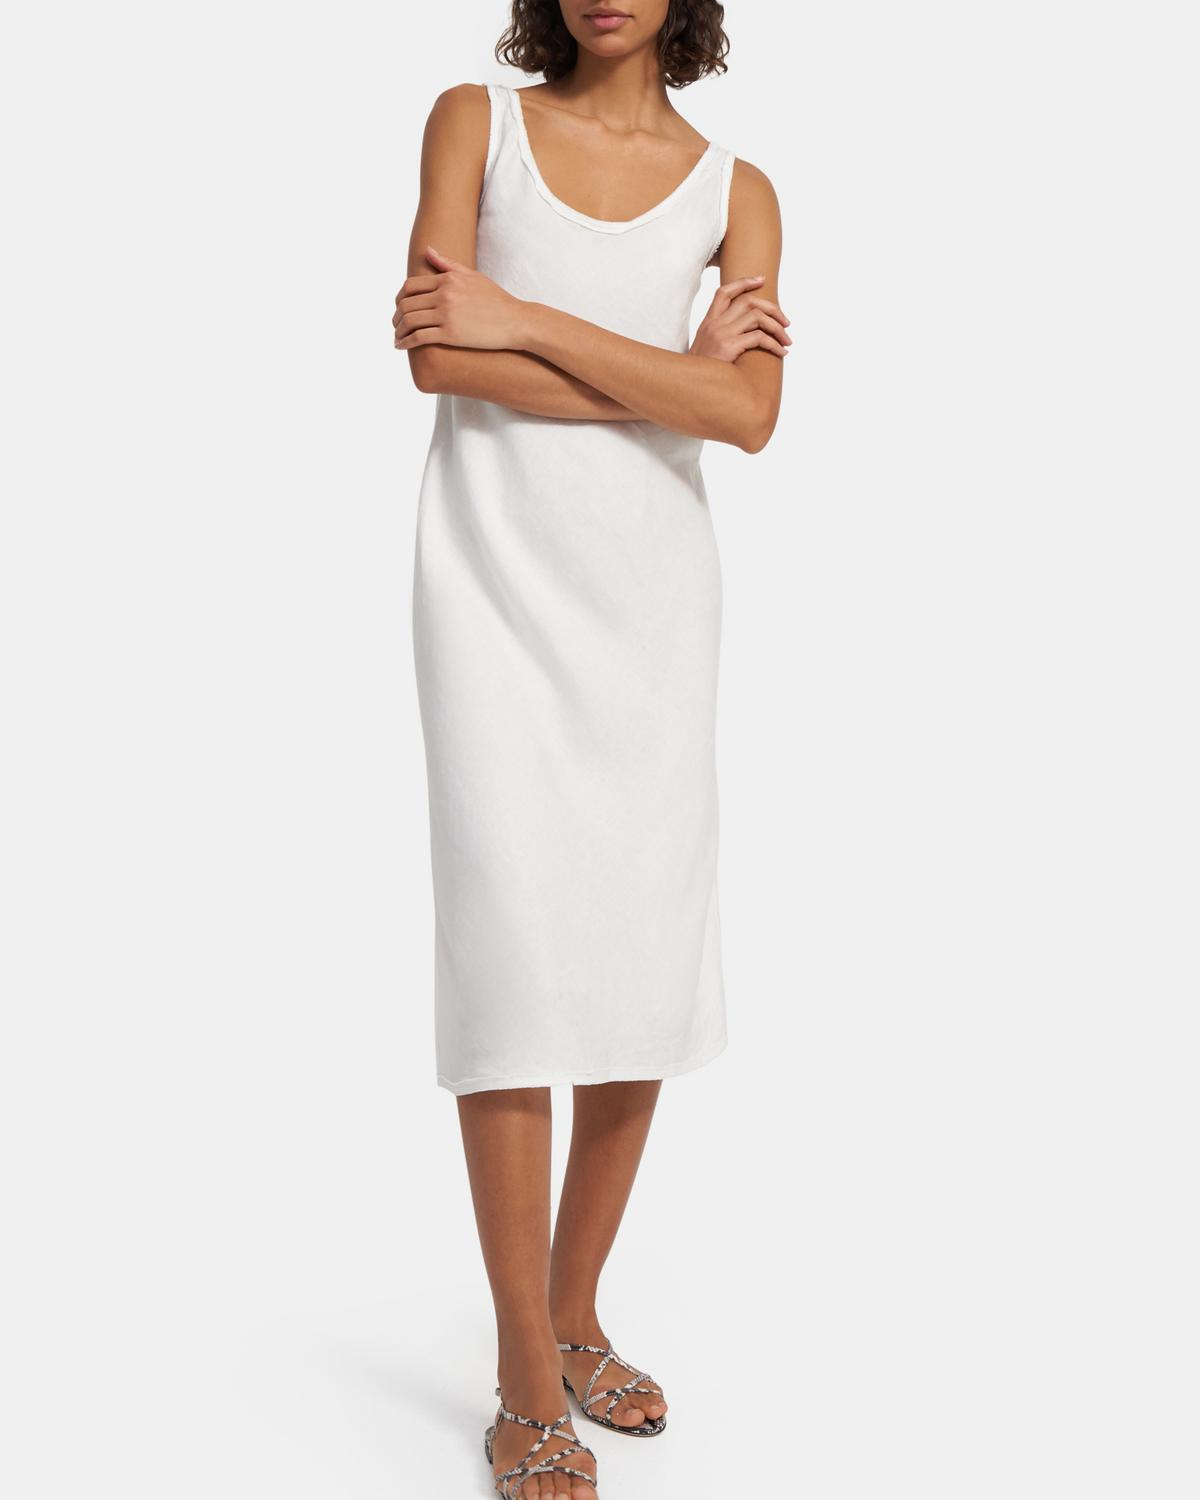 Scoop Tank Dress in Spring Linen